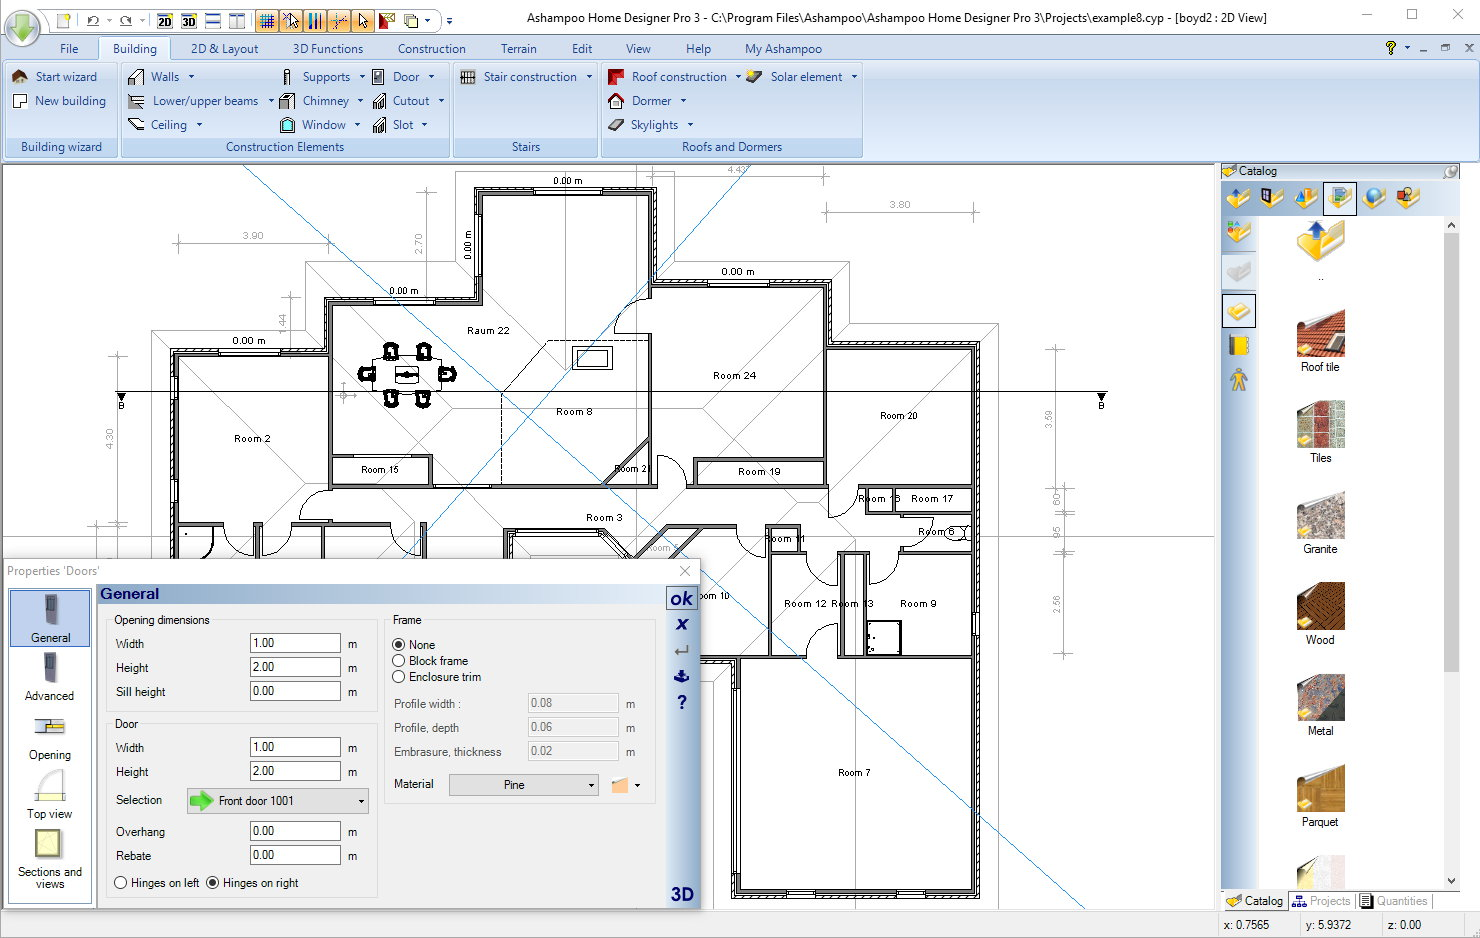 Ashampoo home designer pro 3 for Home designer professional